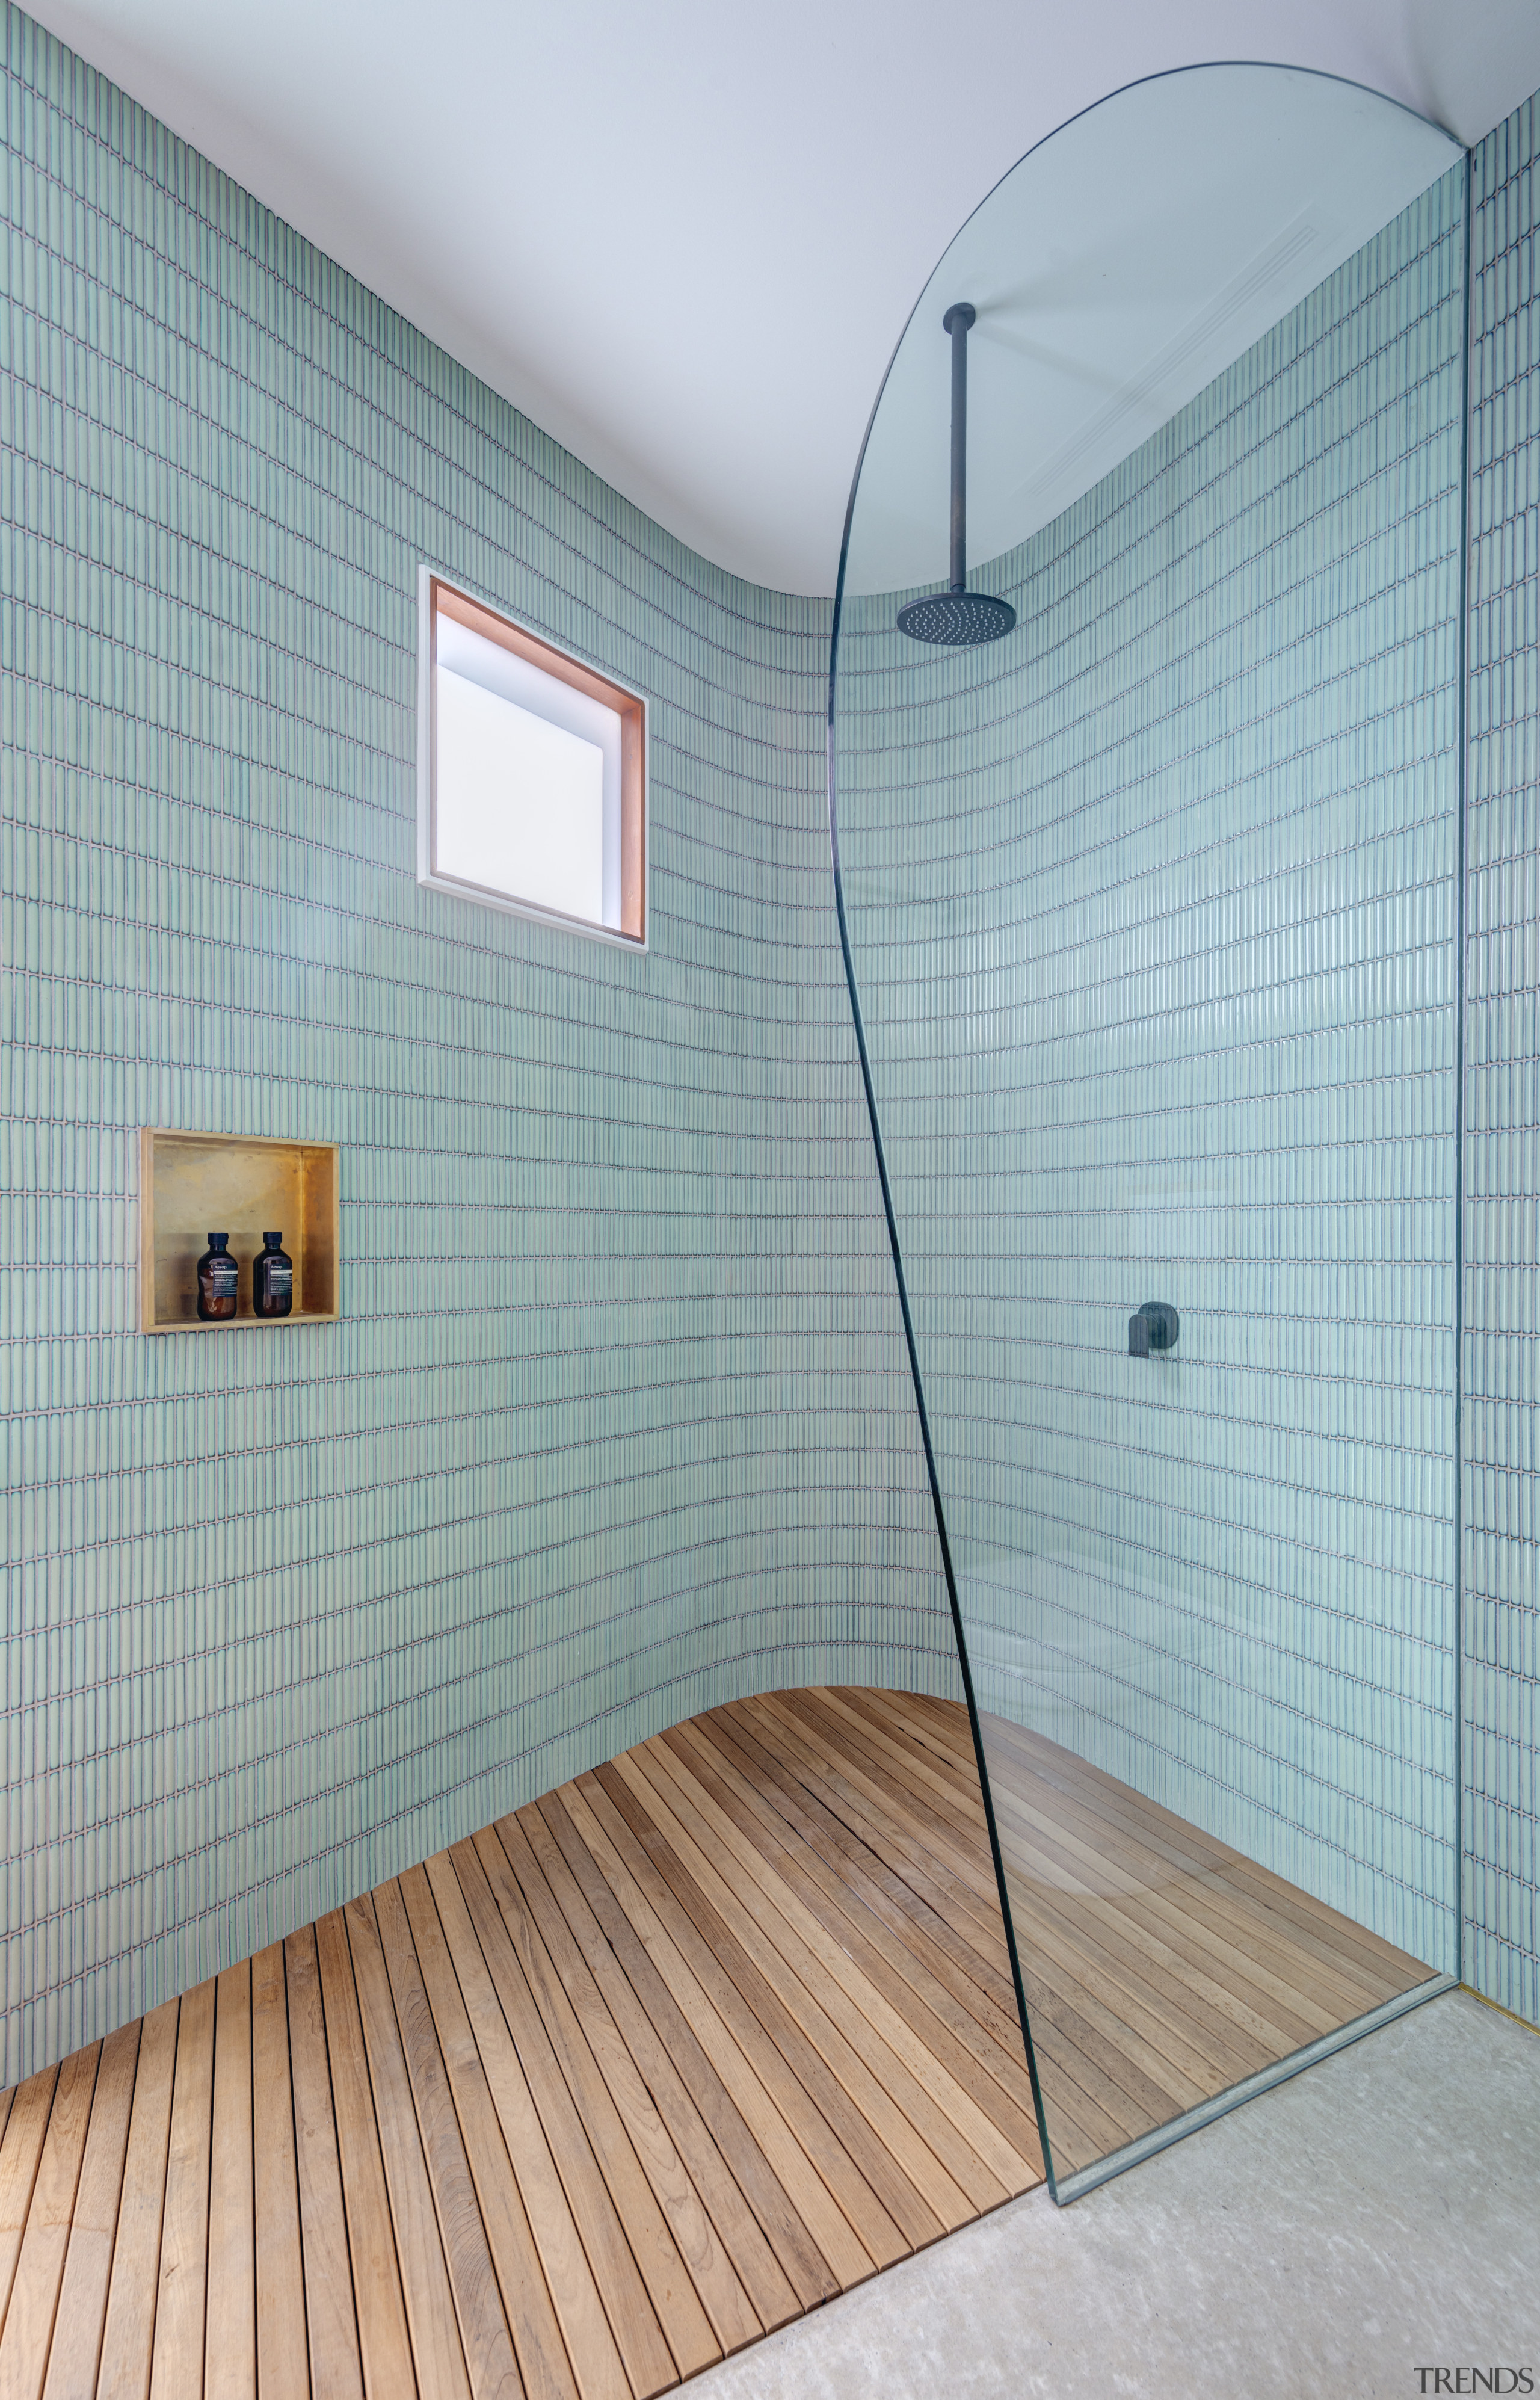 Do showers always need to be boxy? The gray